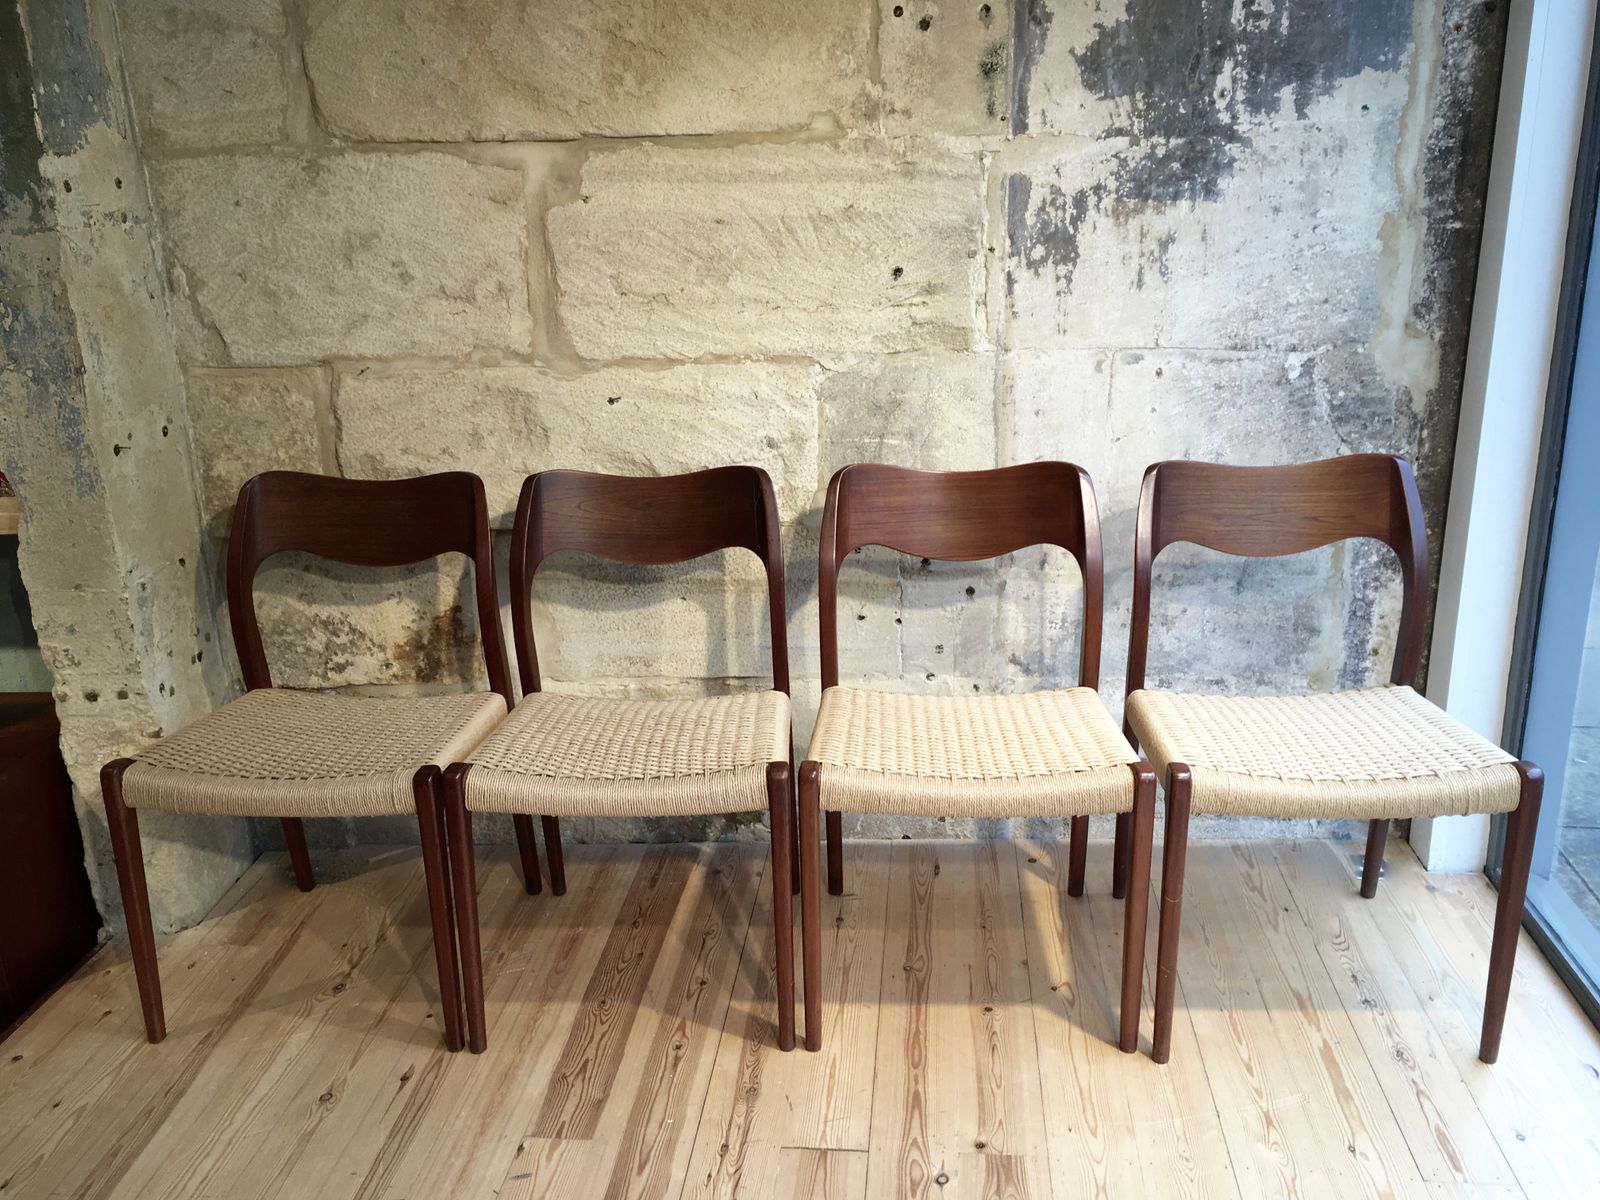 Wooden Dining Chairs from Neils M¸ller Set of 4 for sale at Pamono